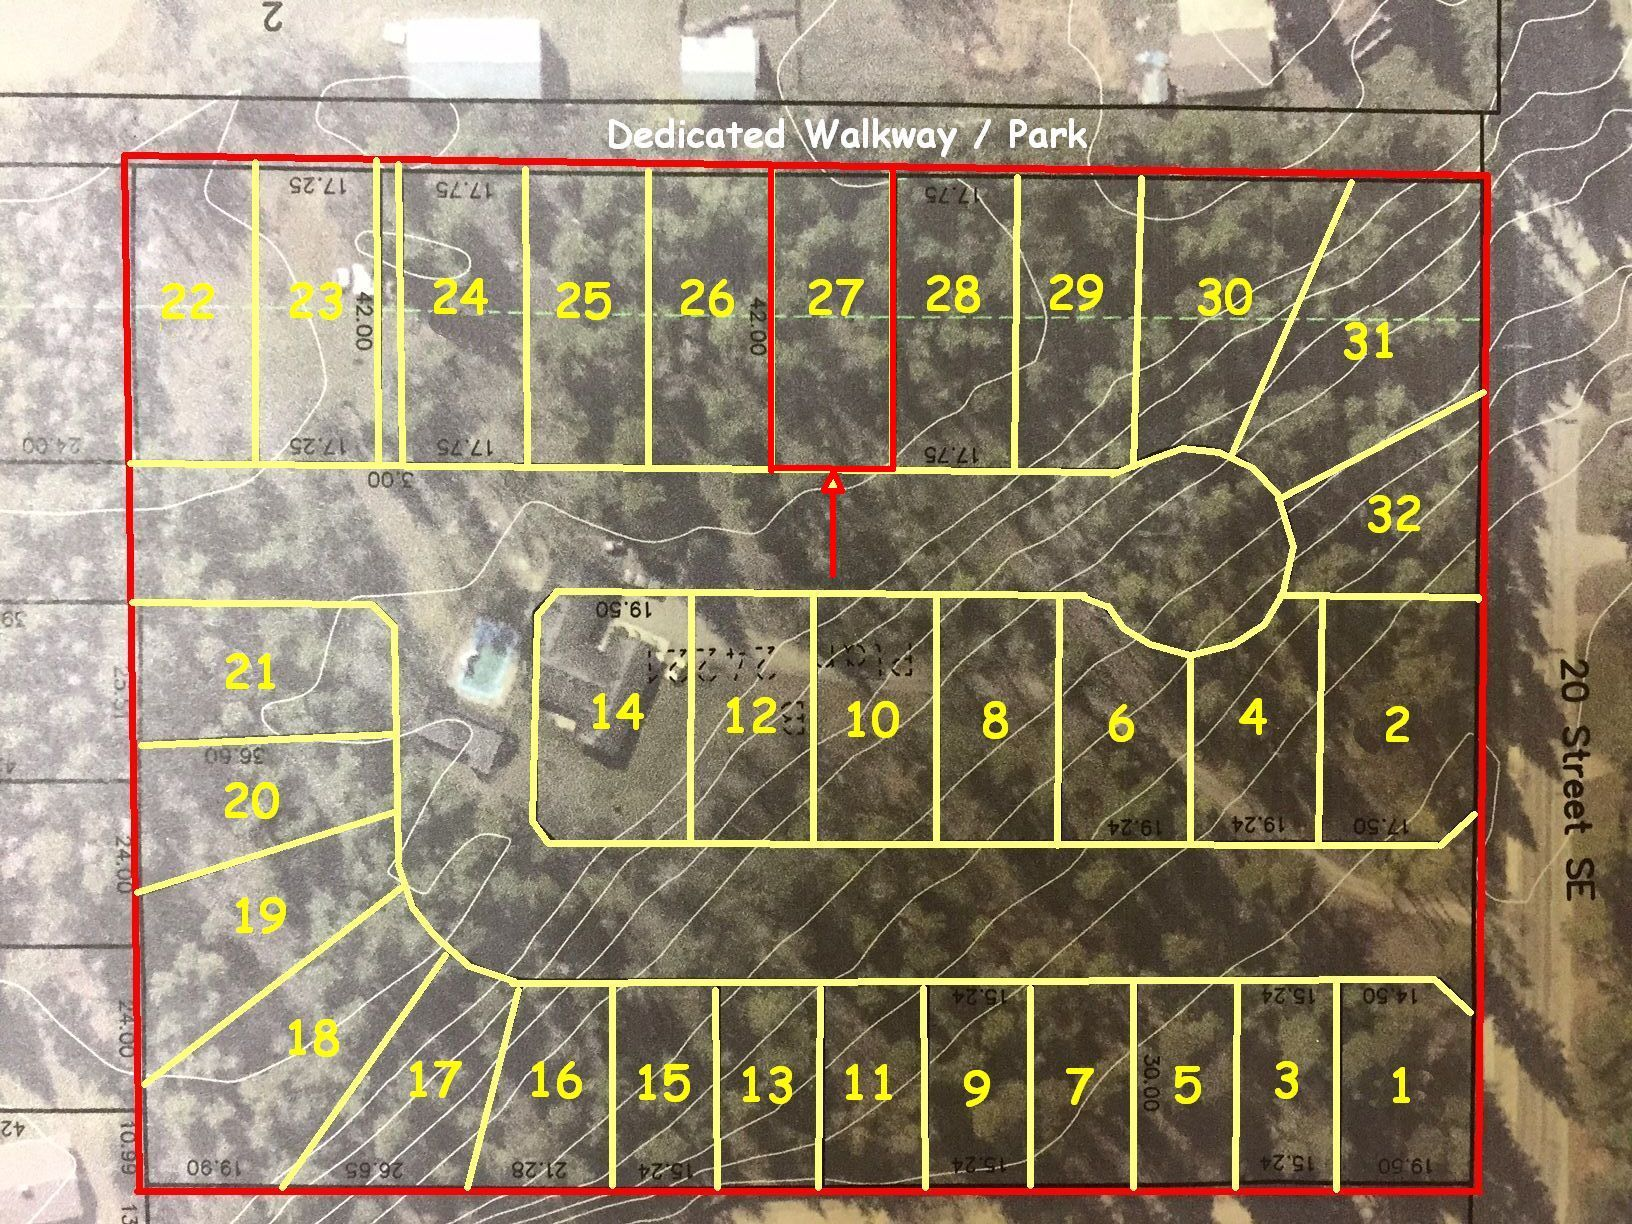 Main Photo: Lot 28 or 29 2100 Southeast 15 Avenue in Salmon Arm: HiIlcrest Vacant Land for sale (SE Salmon Arm)  : MLS®# 10154455